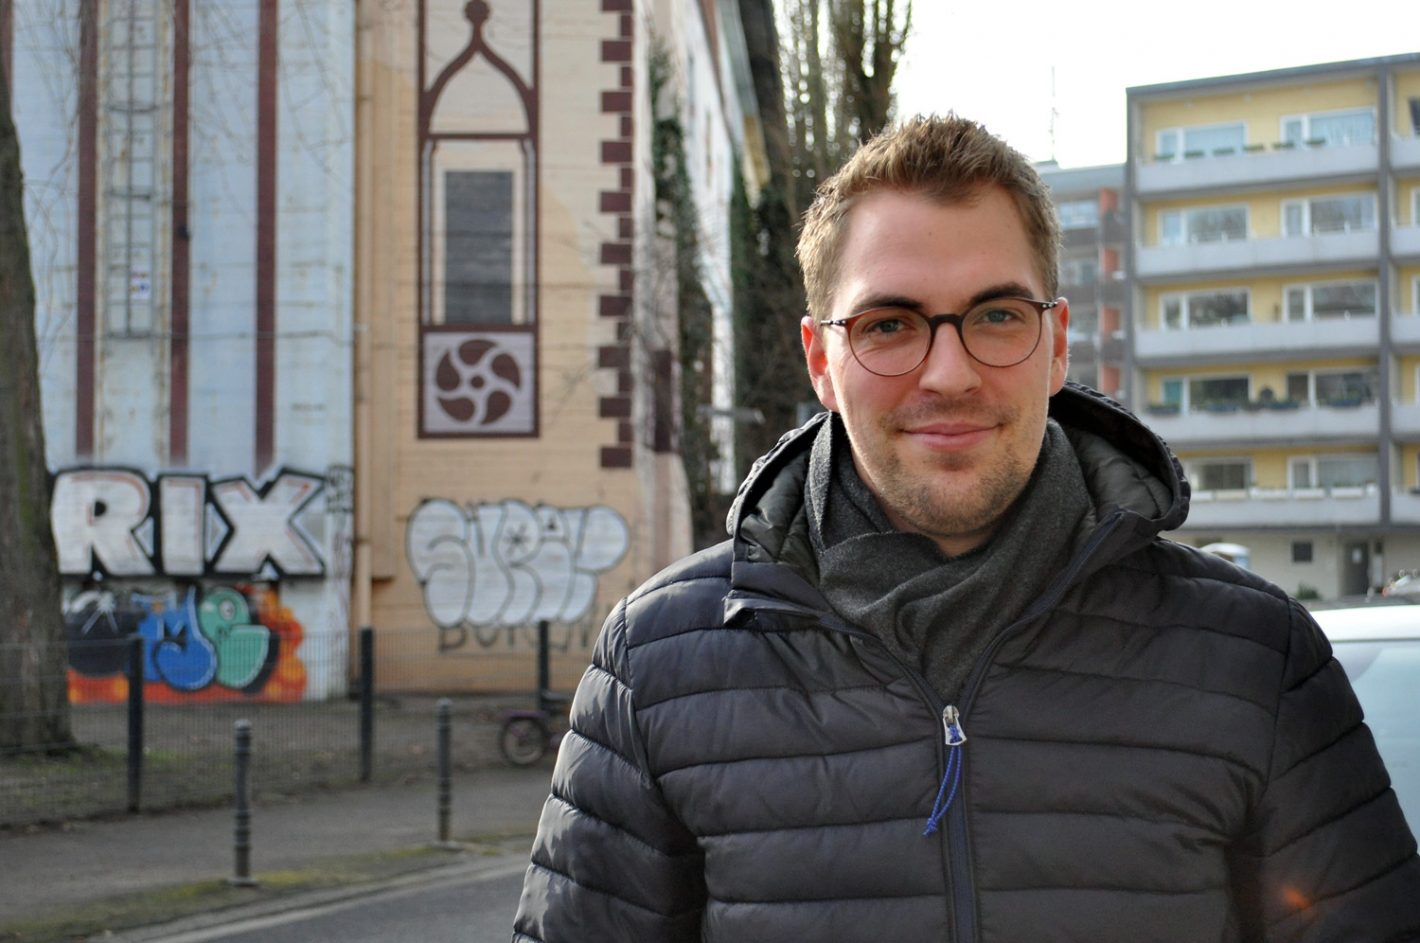 Mann in Winterjacke vor Graffiti